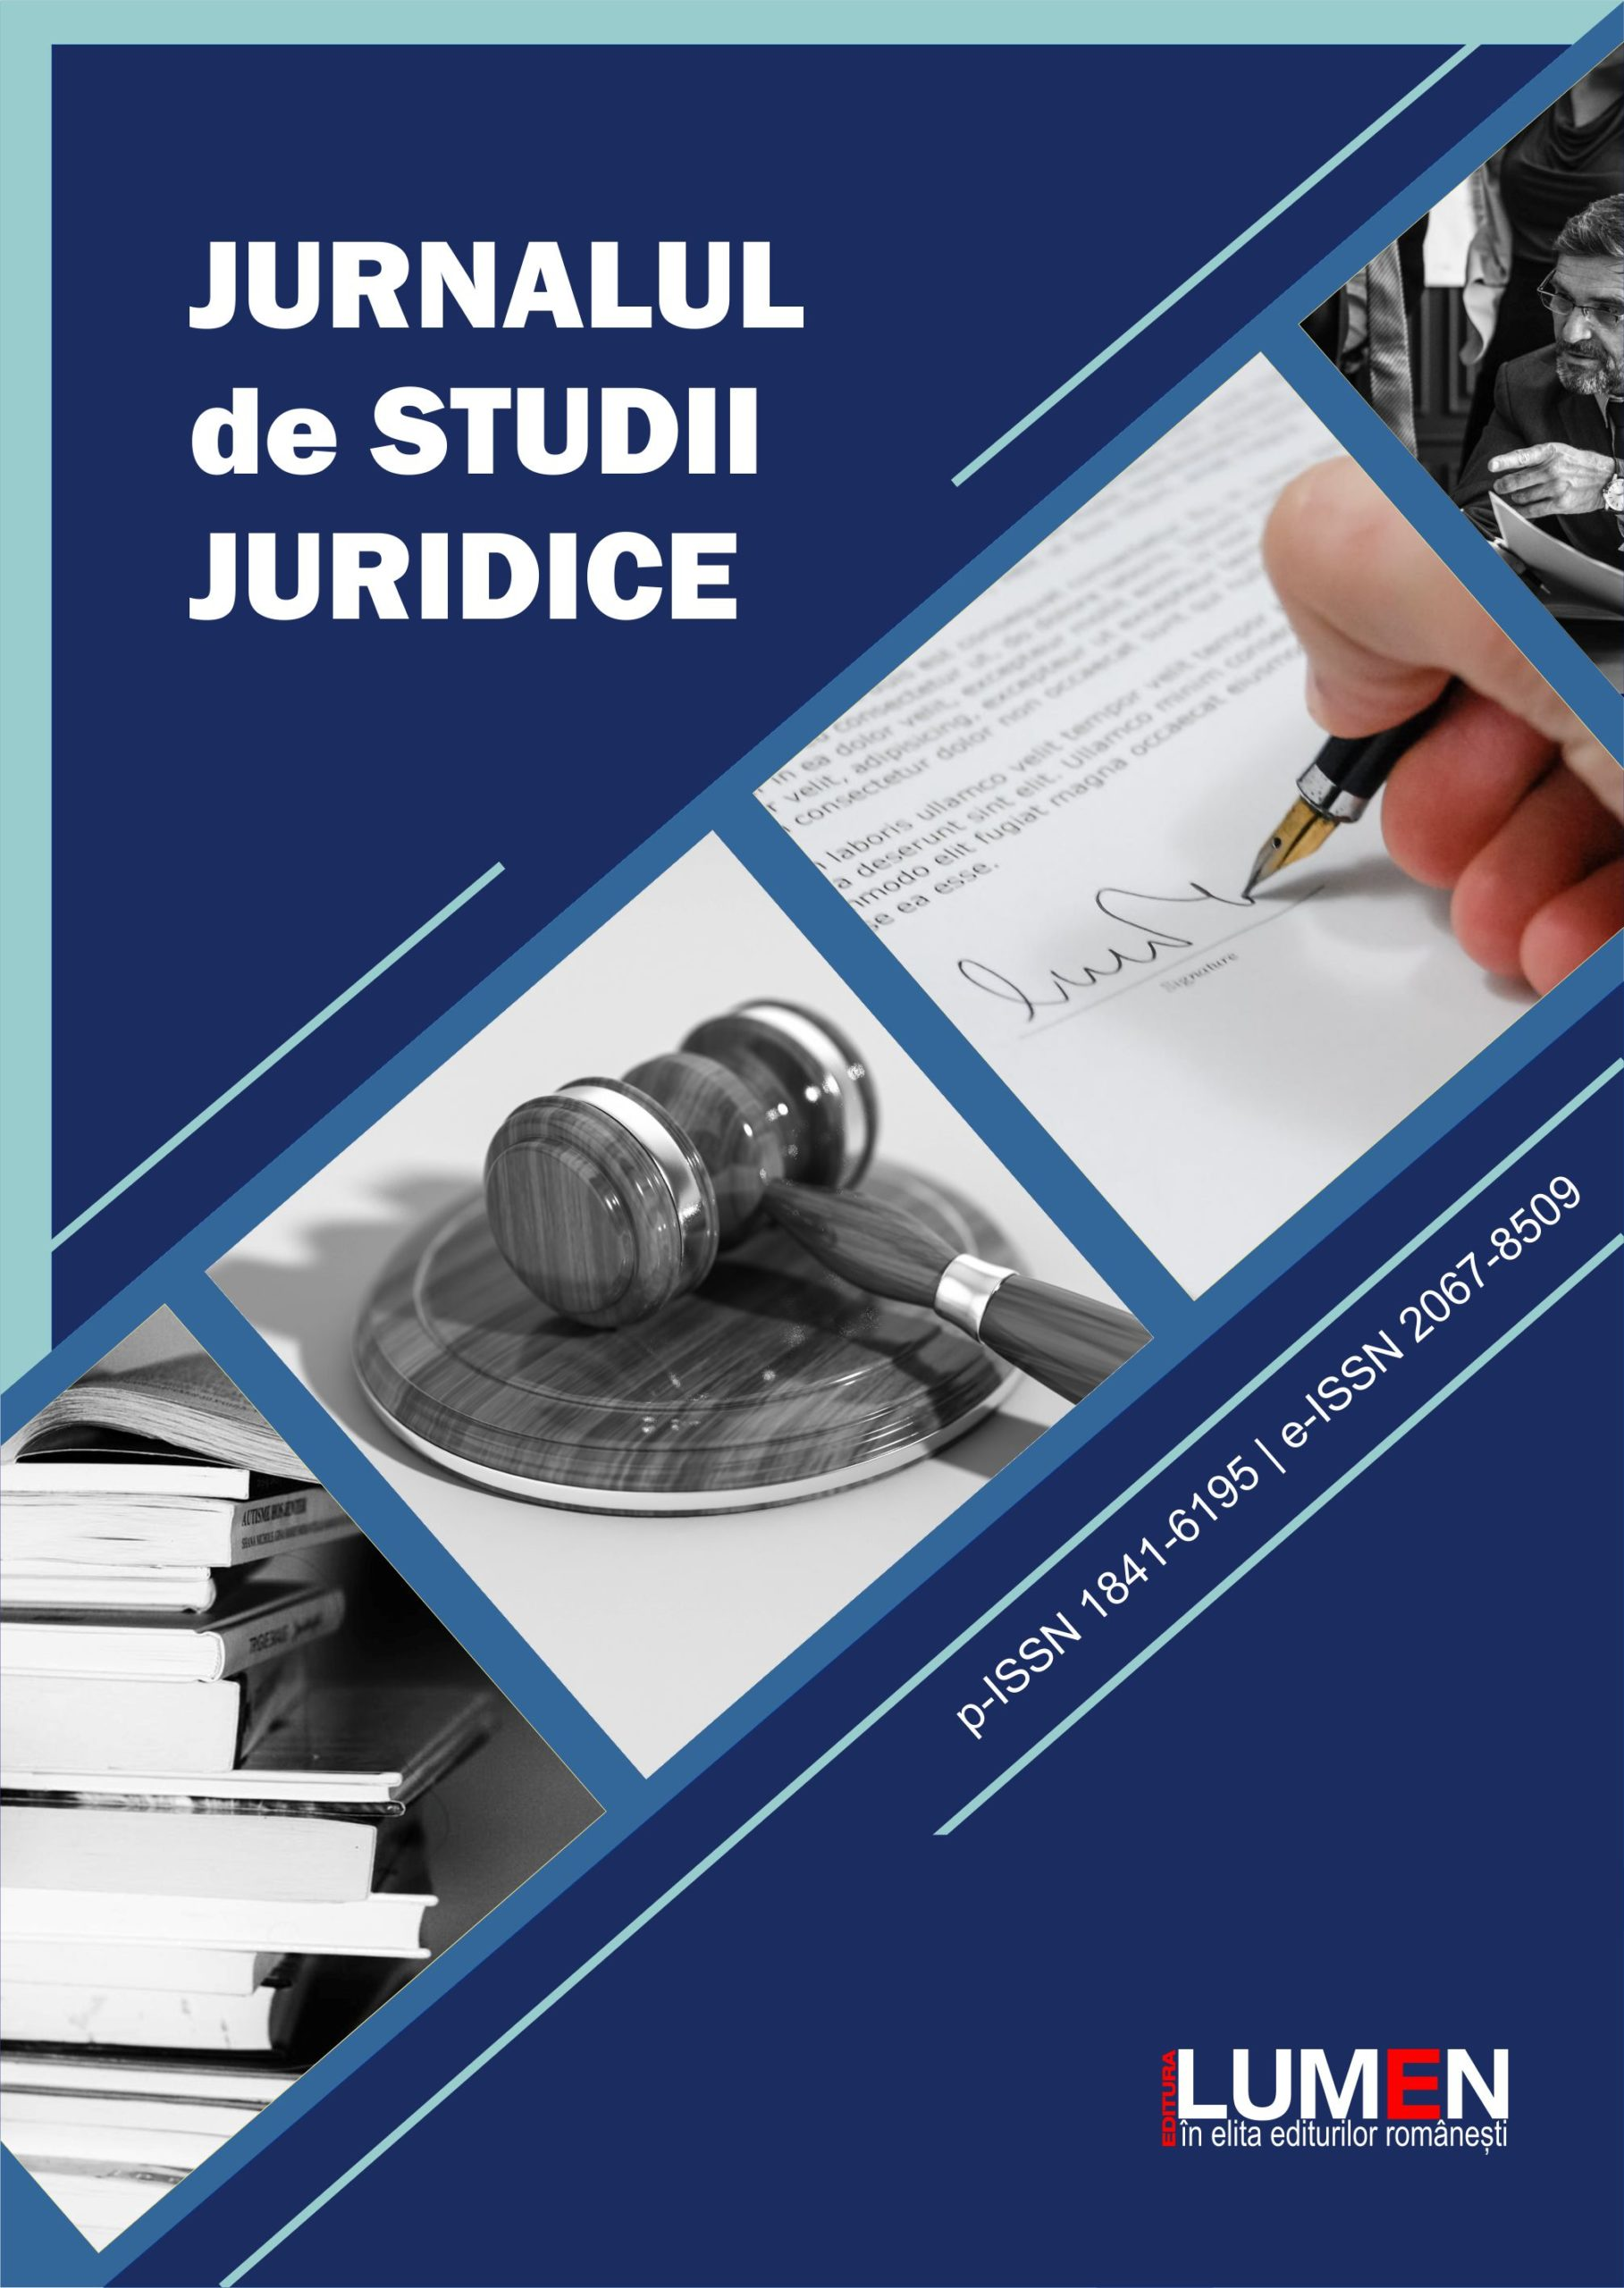 Publish your work with LUMEN COVER Jurnalul de Studii Juridice scaled